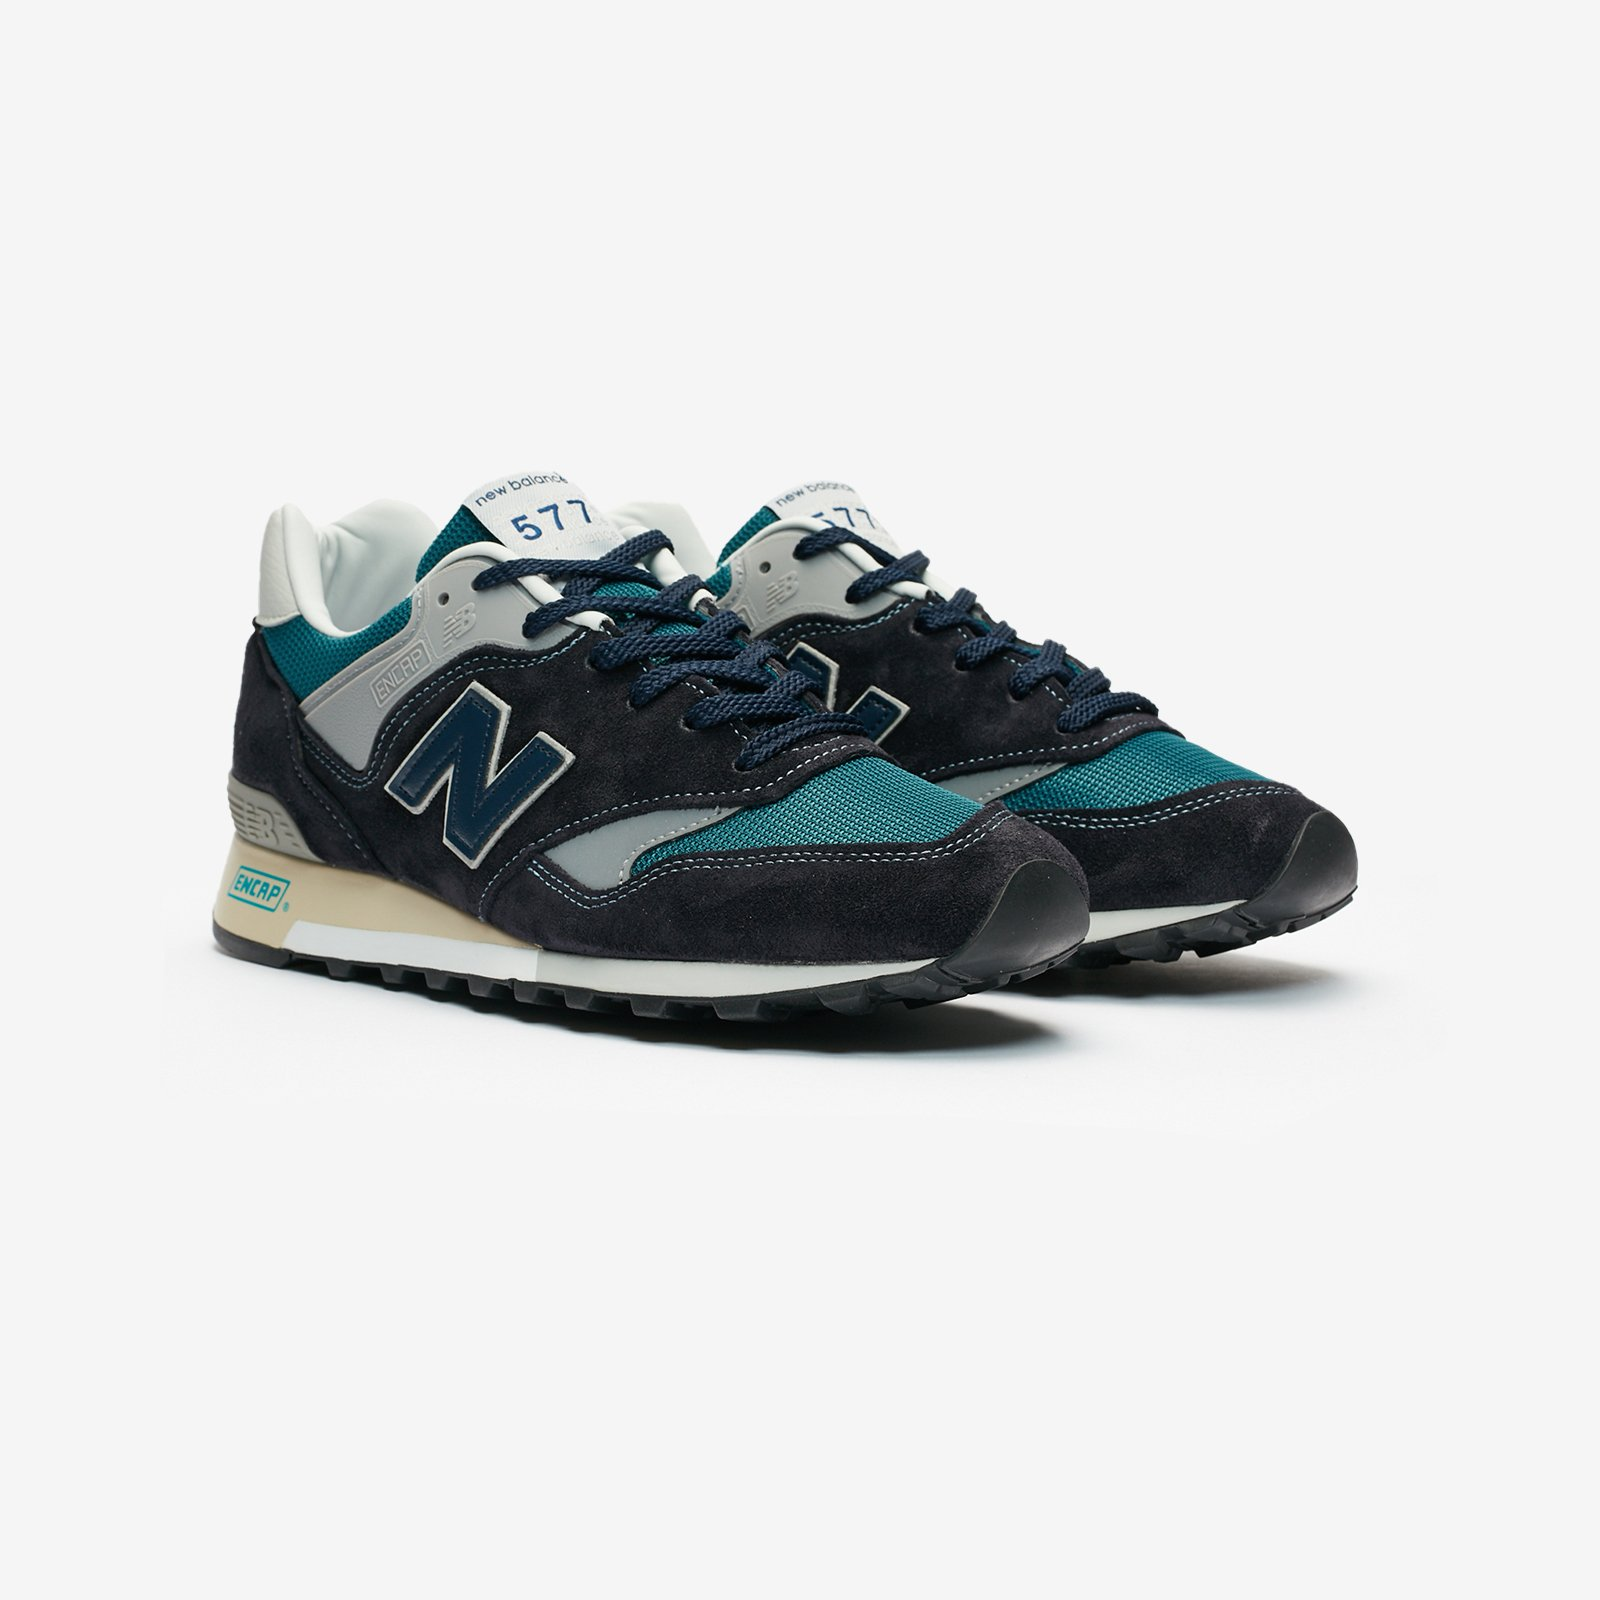 New Balance M577 - M577orc - SNS | sneakers & streetwear online ...